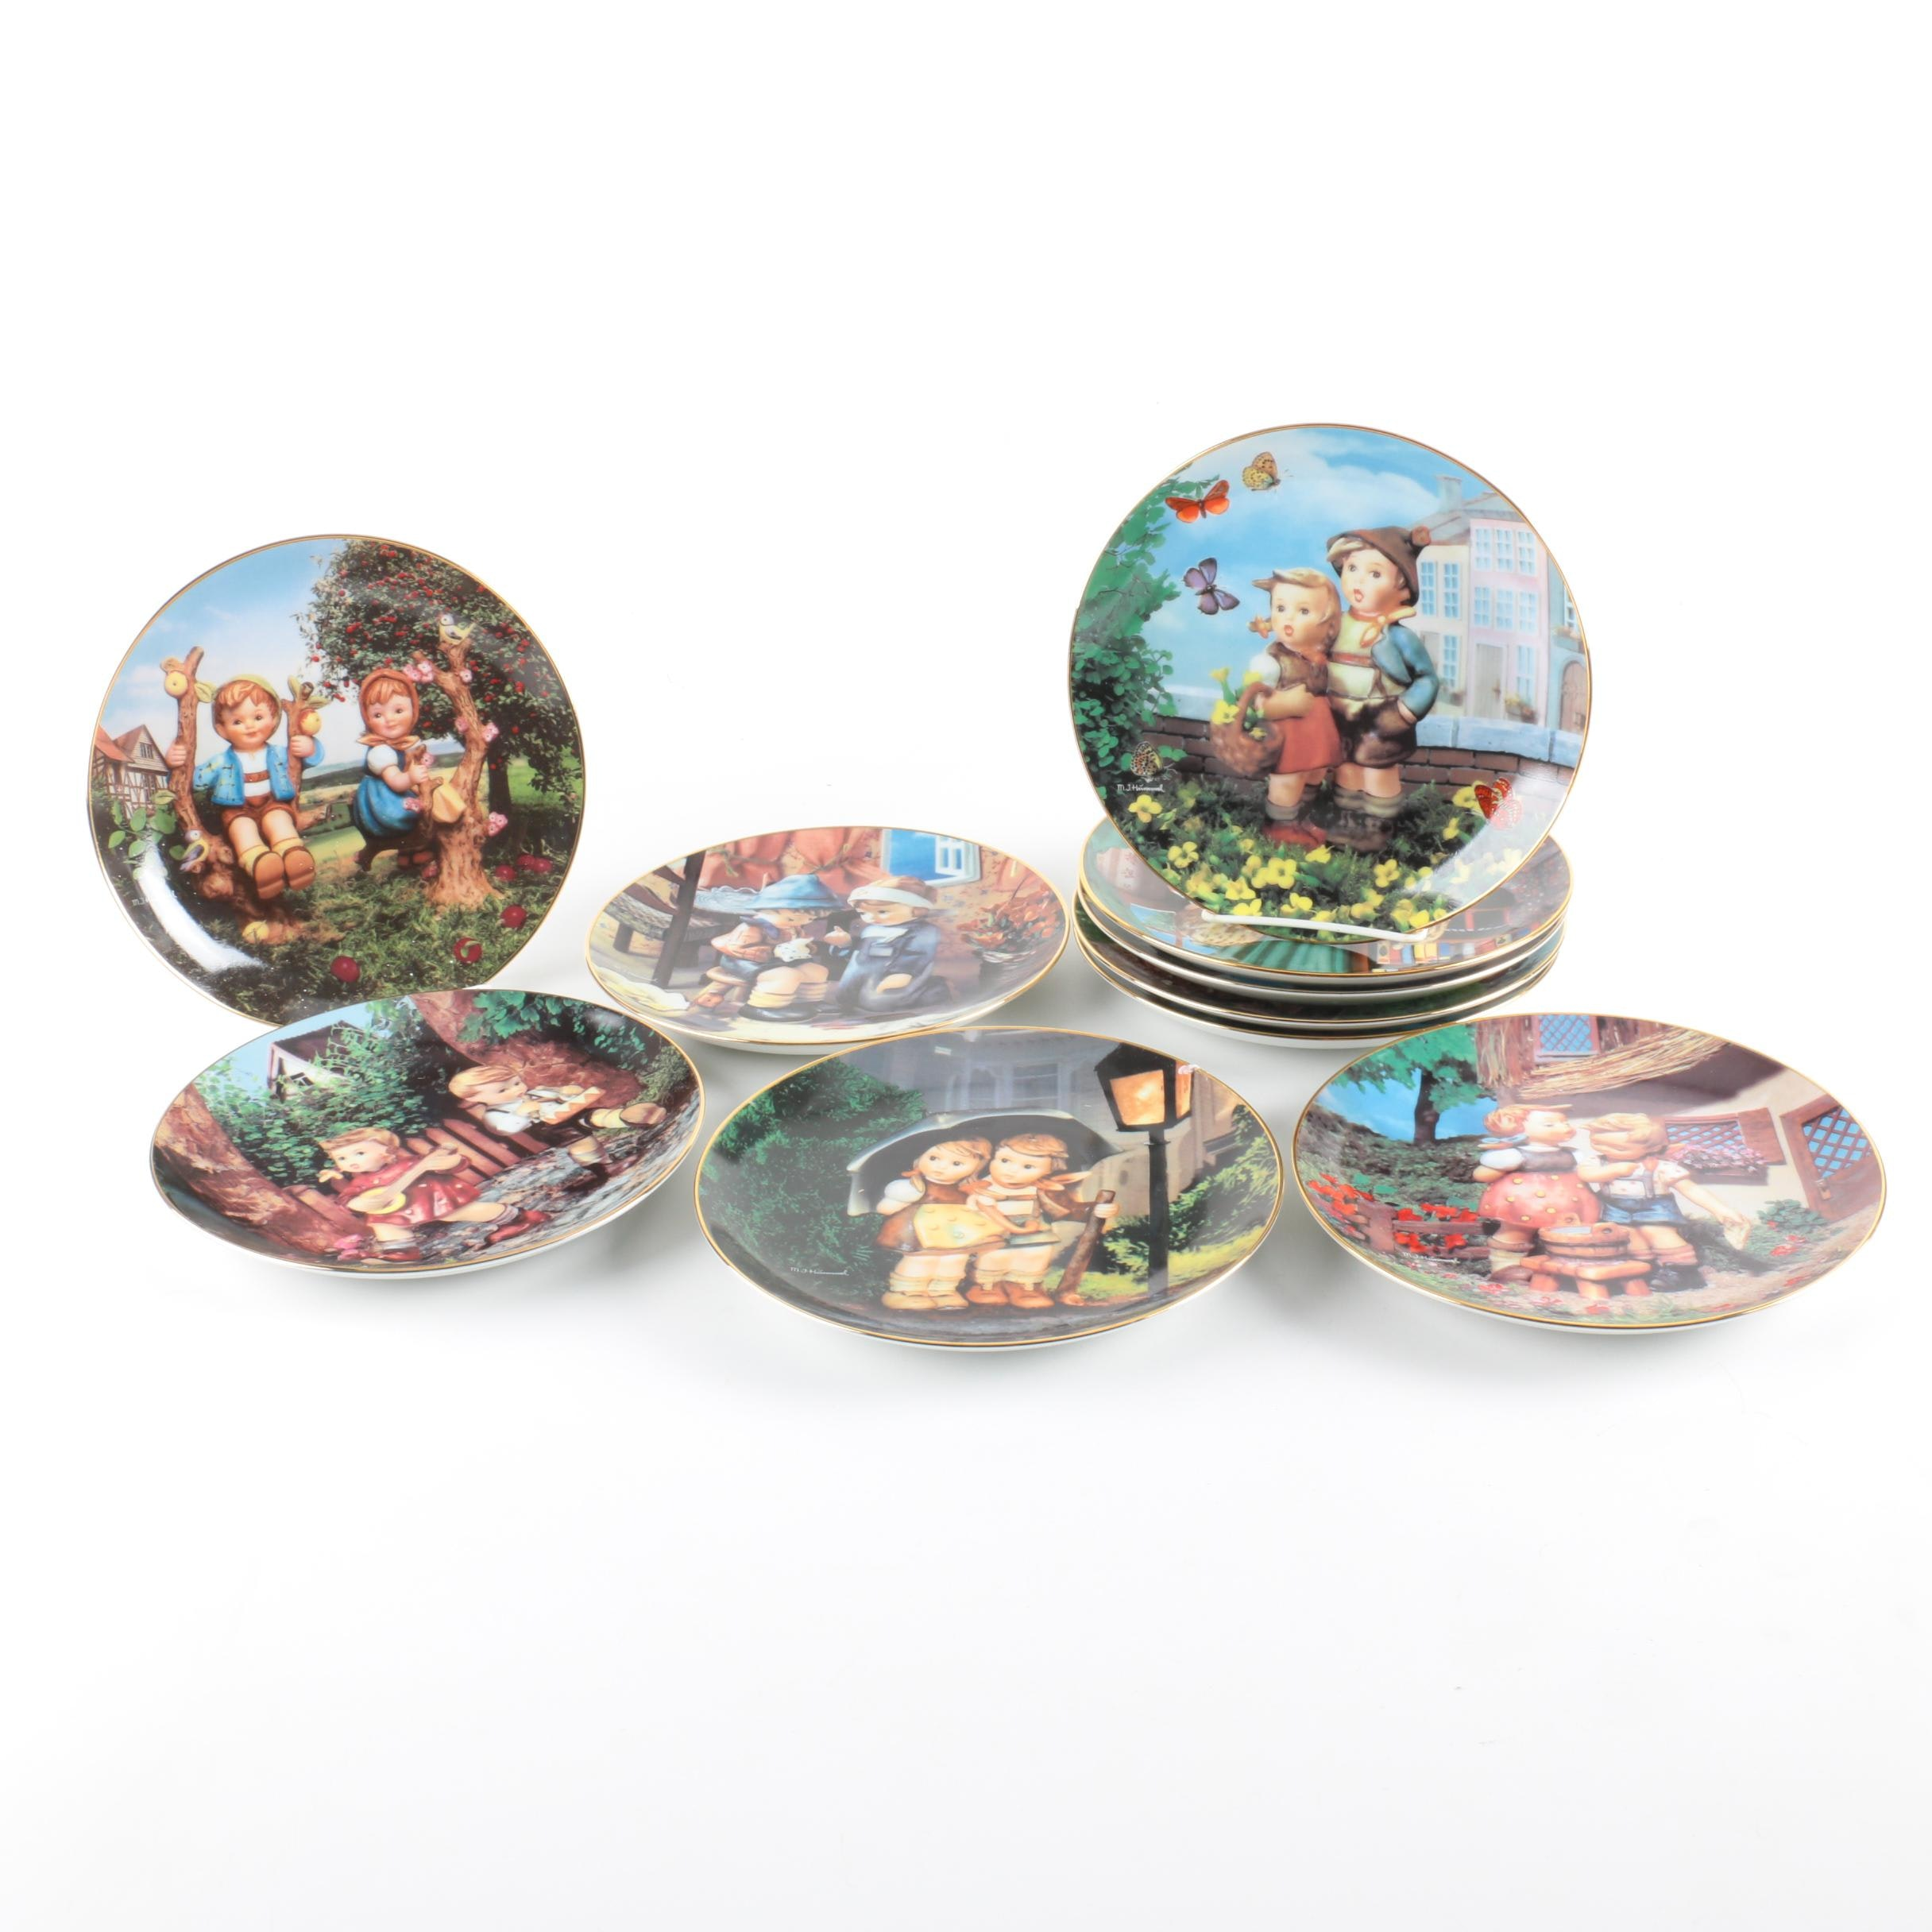 Hummel Collector's Plates by The Danbury Mint